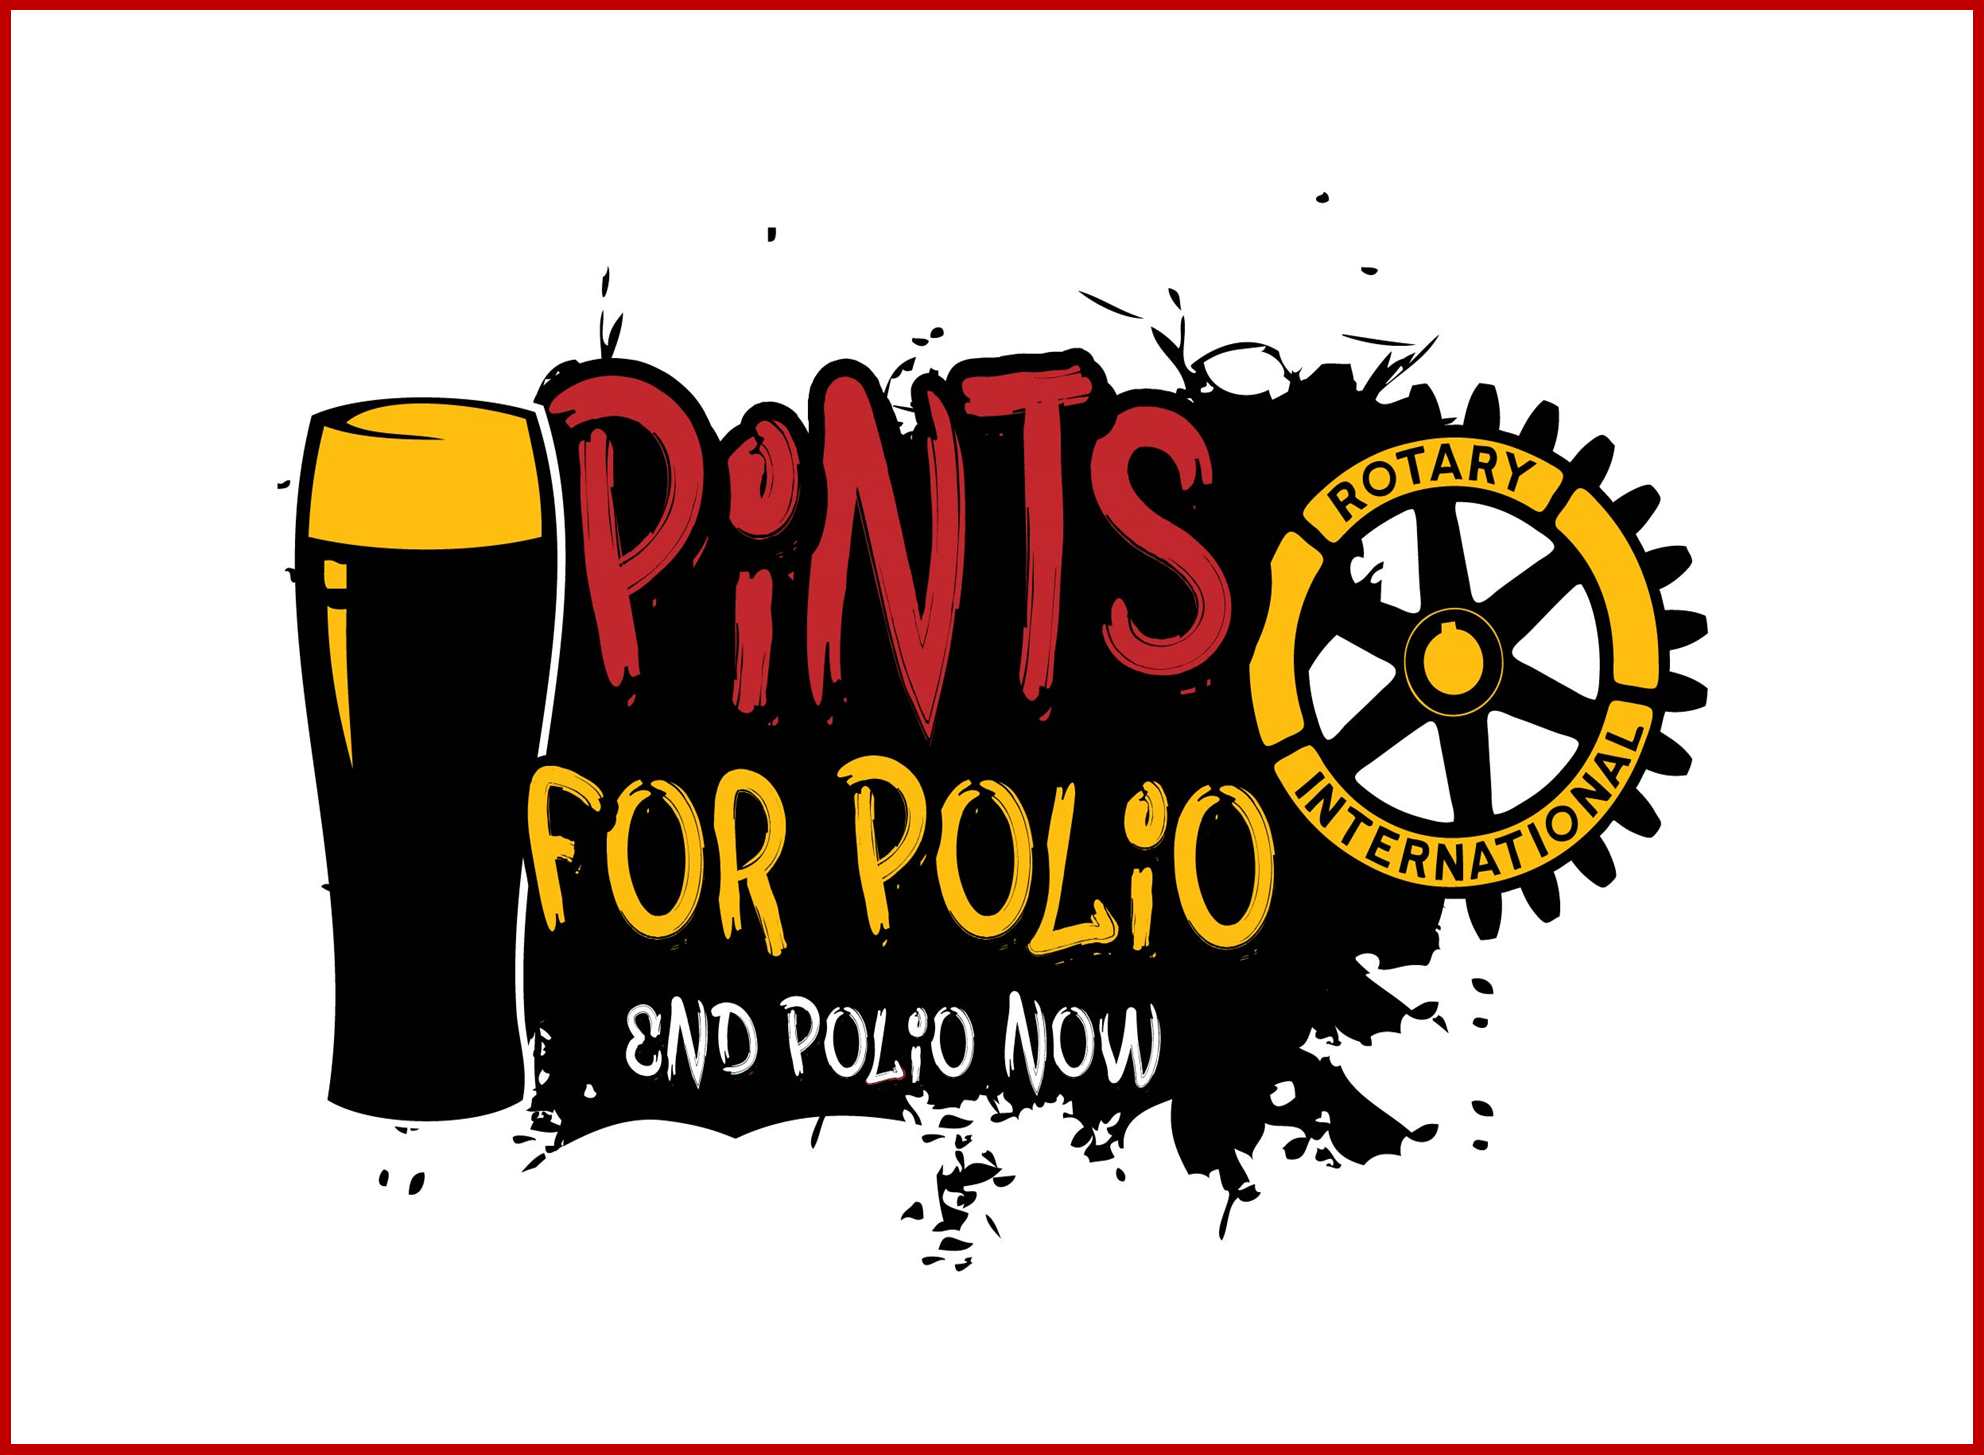 pints-for-polio